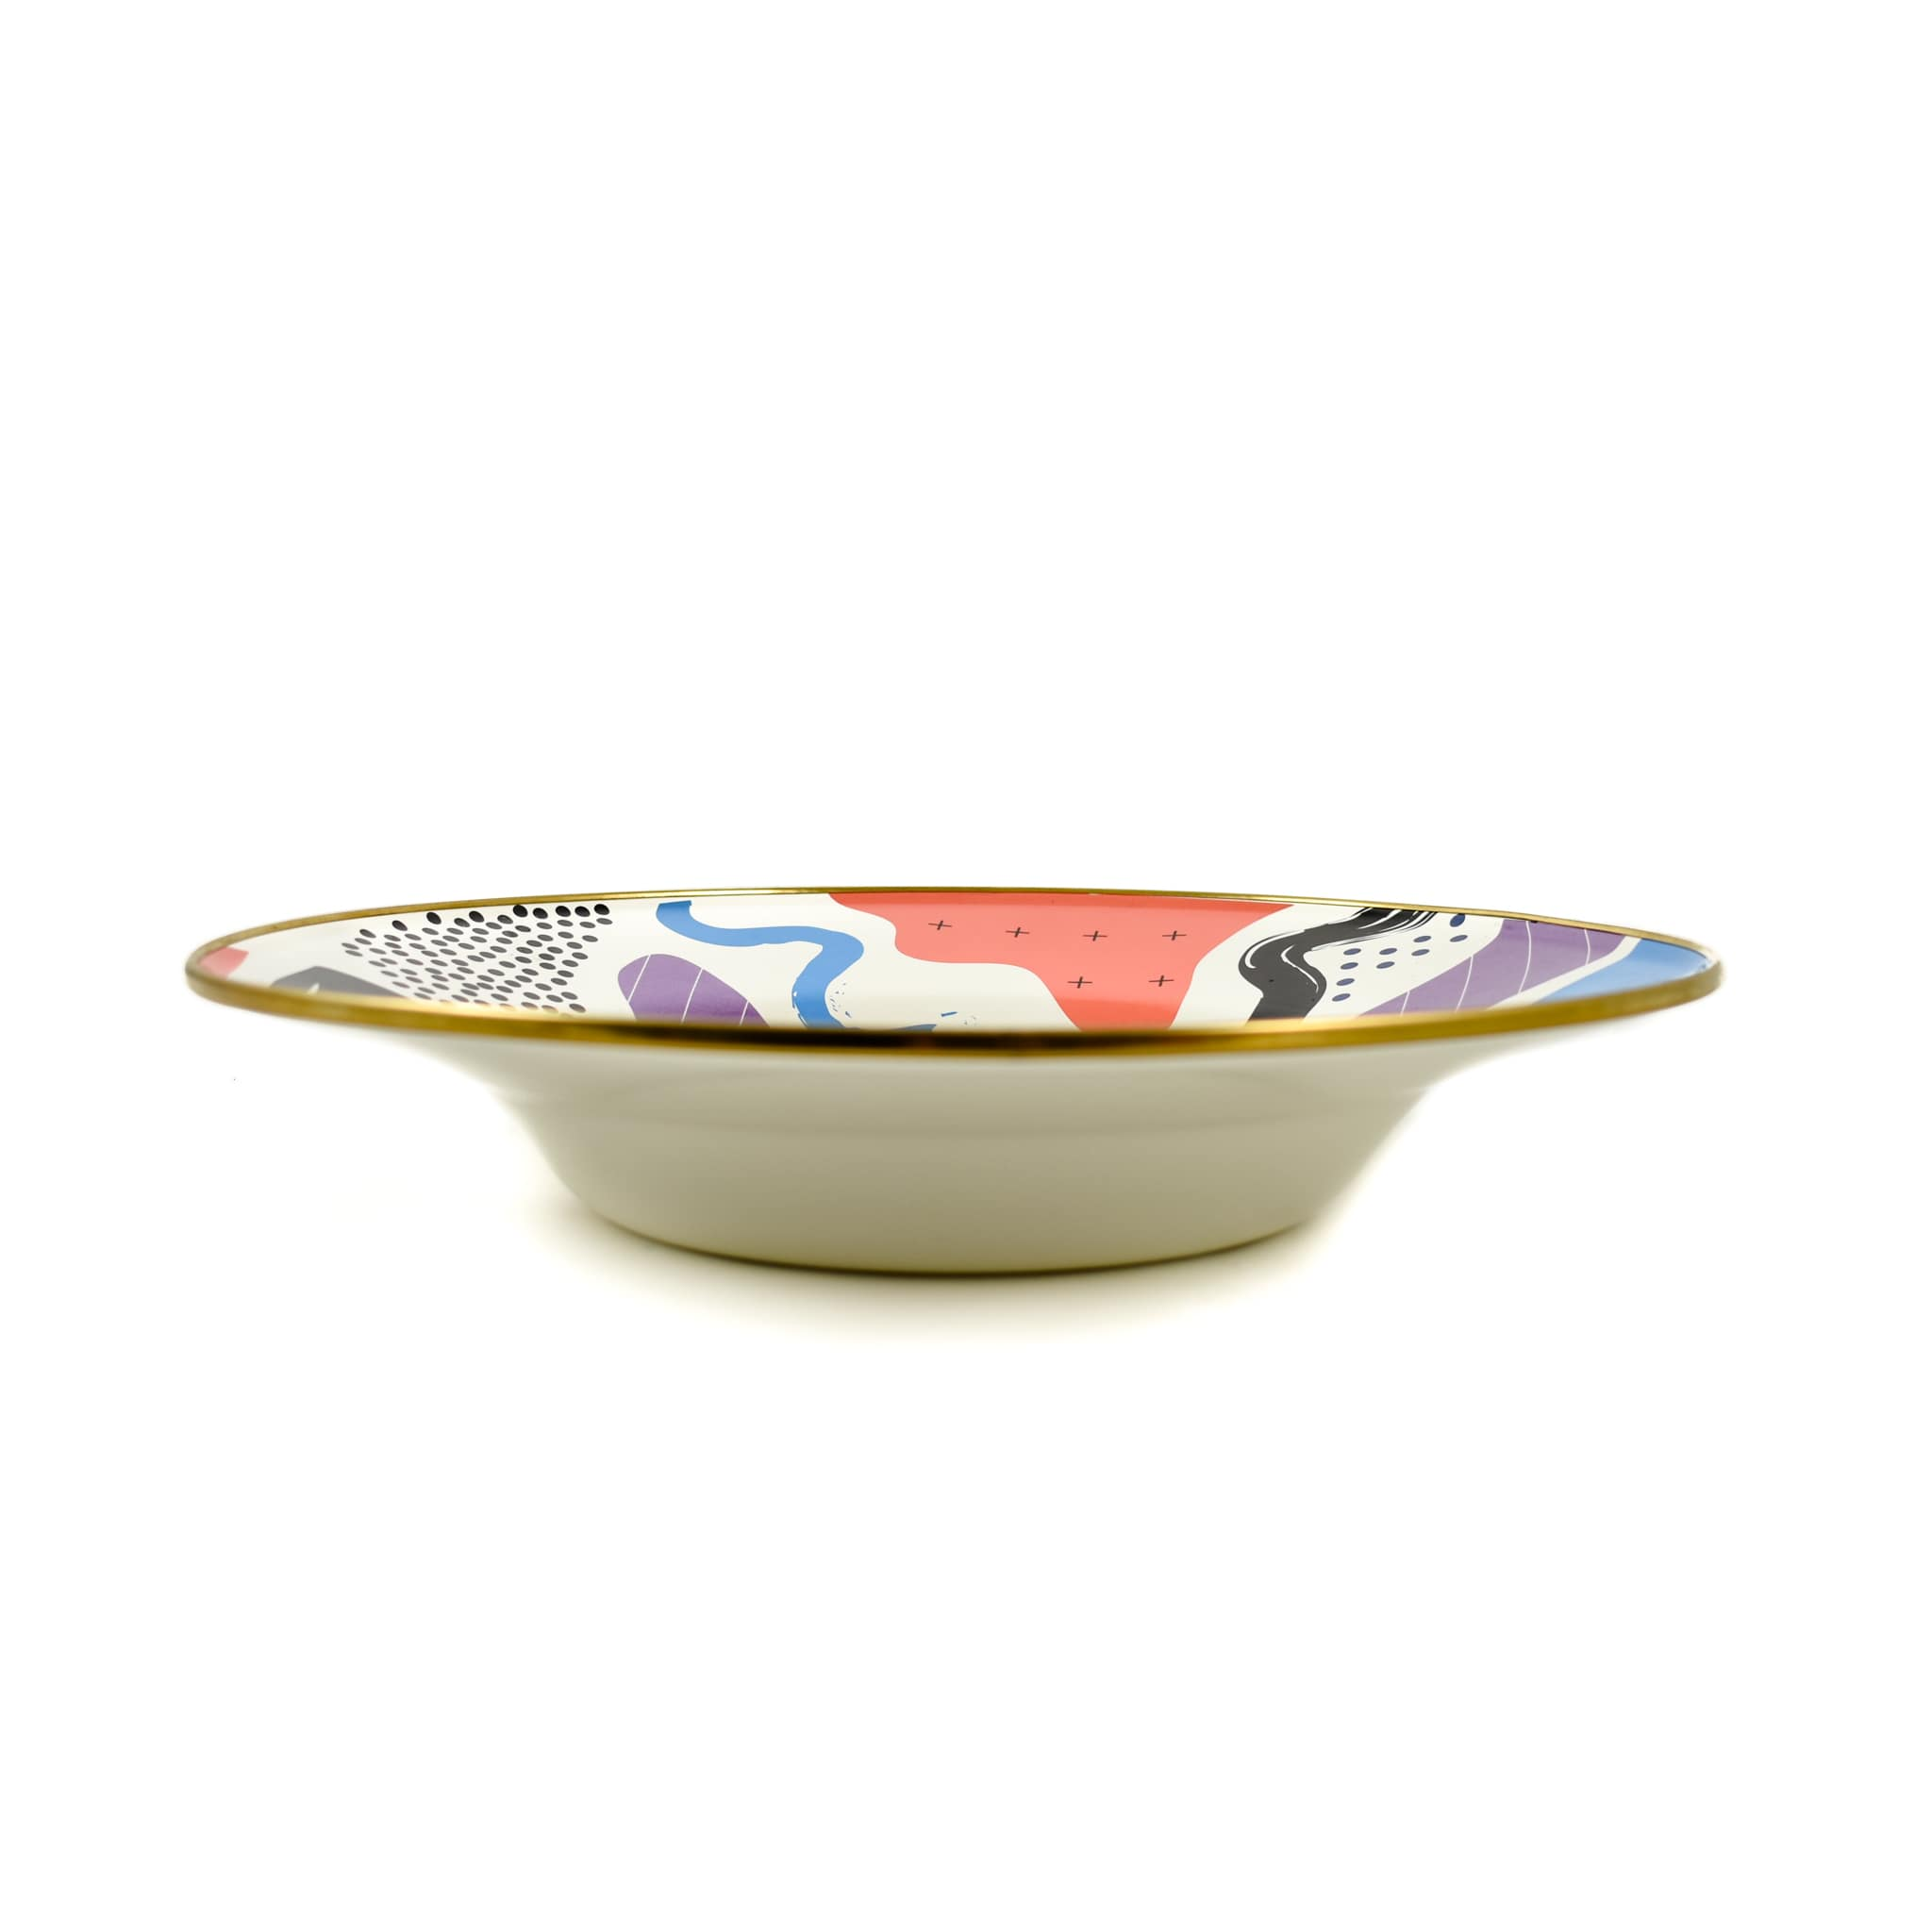 Kapka Abstract Enamel Large Serving Dish 30cm Turkish Oven to Tableware